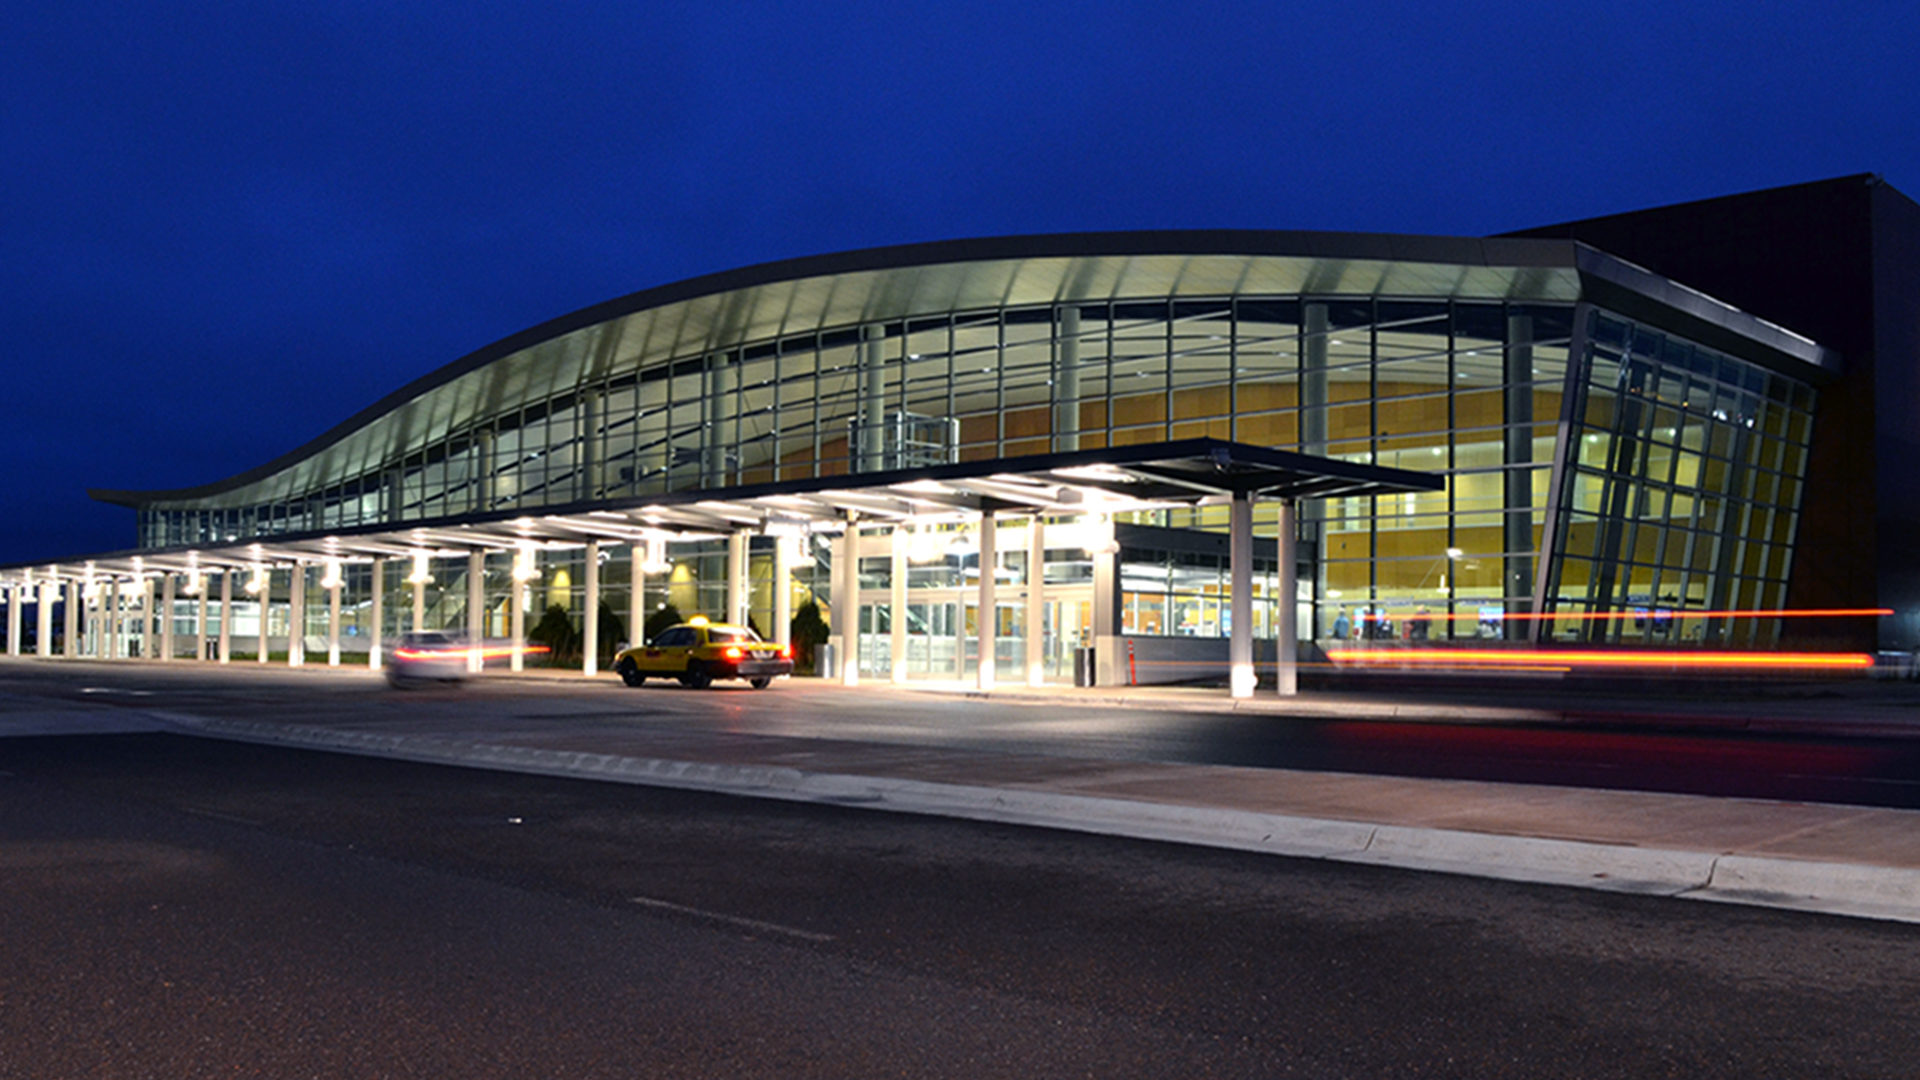 Duluth International Airport Terminal Exterior Night Shot of Departure Drop Off